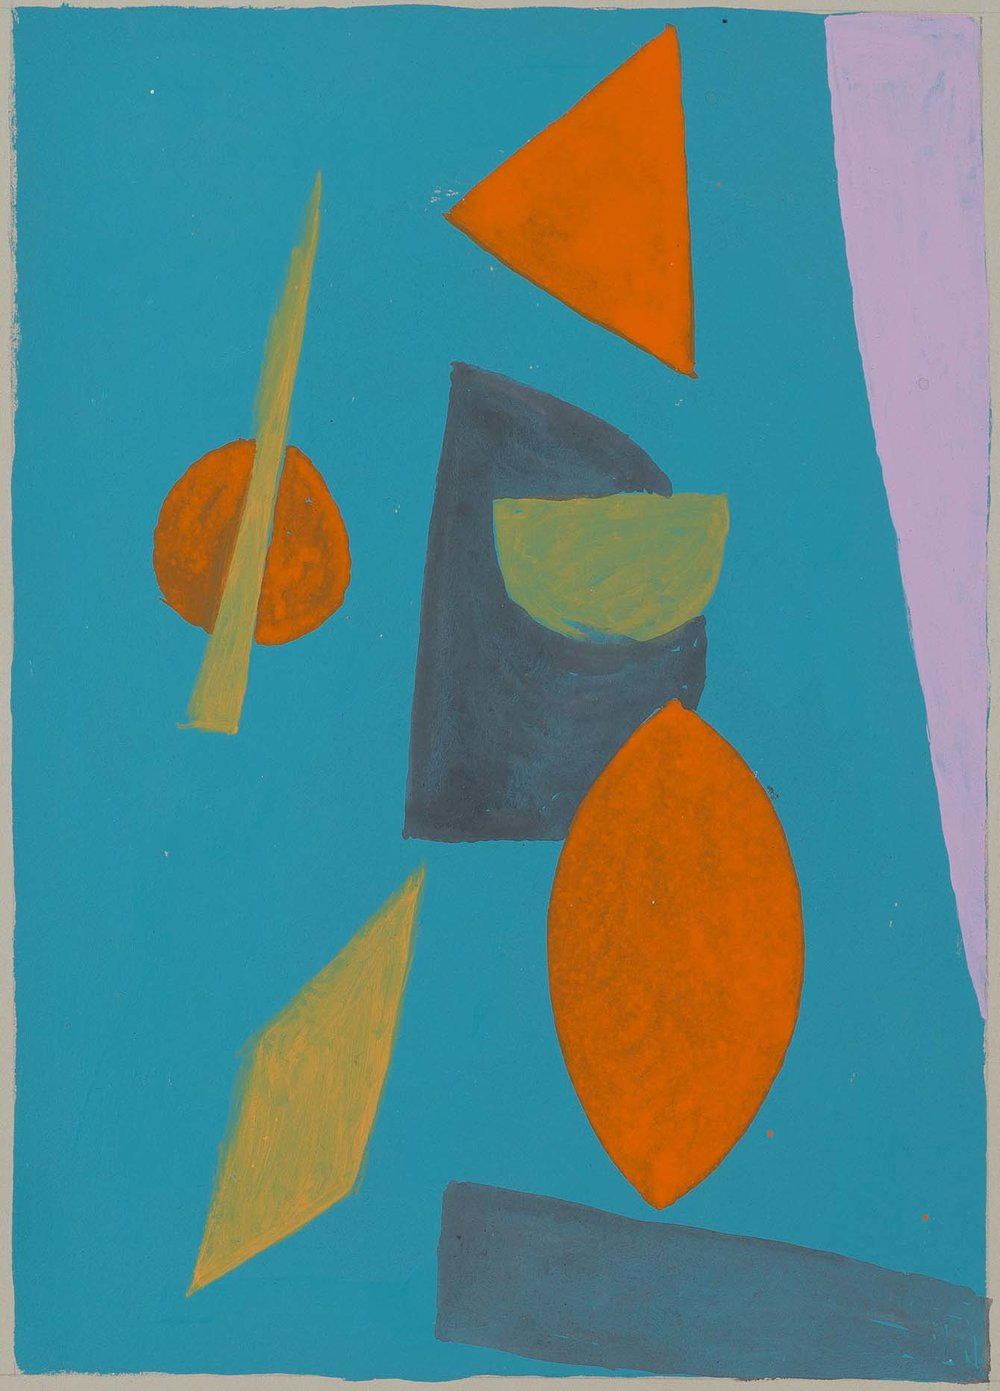 #28 - 1989, 1989, Acrylic on paper, 15 x 11.5 inches (38.1 x 29.2 cm)